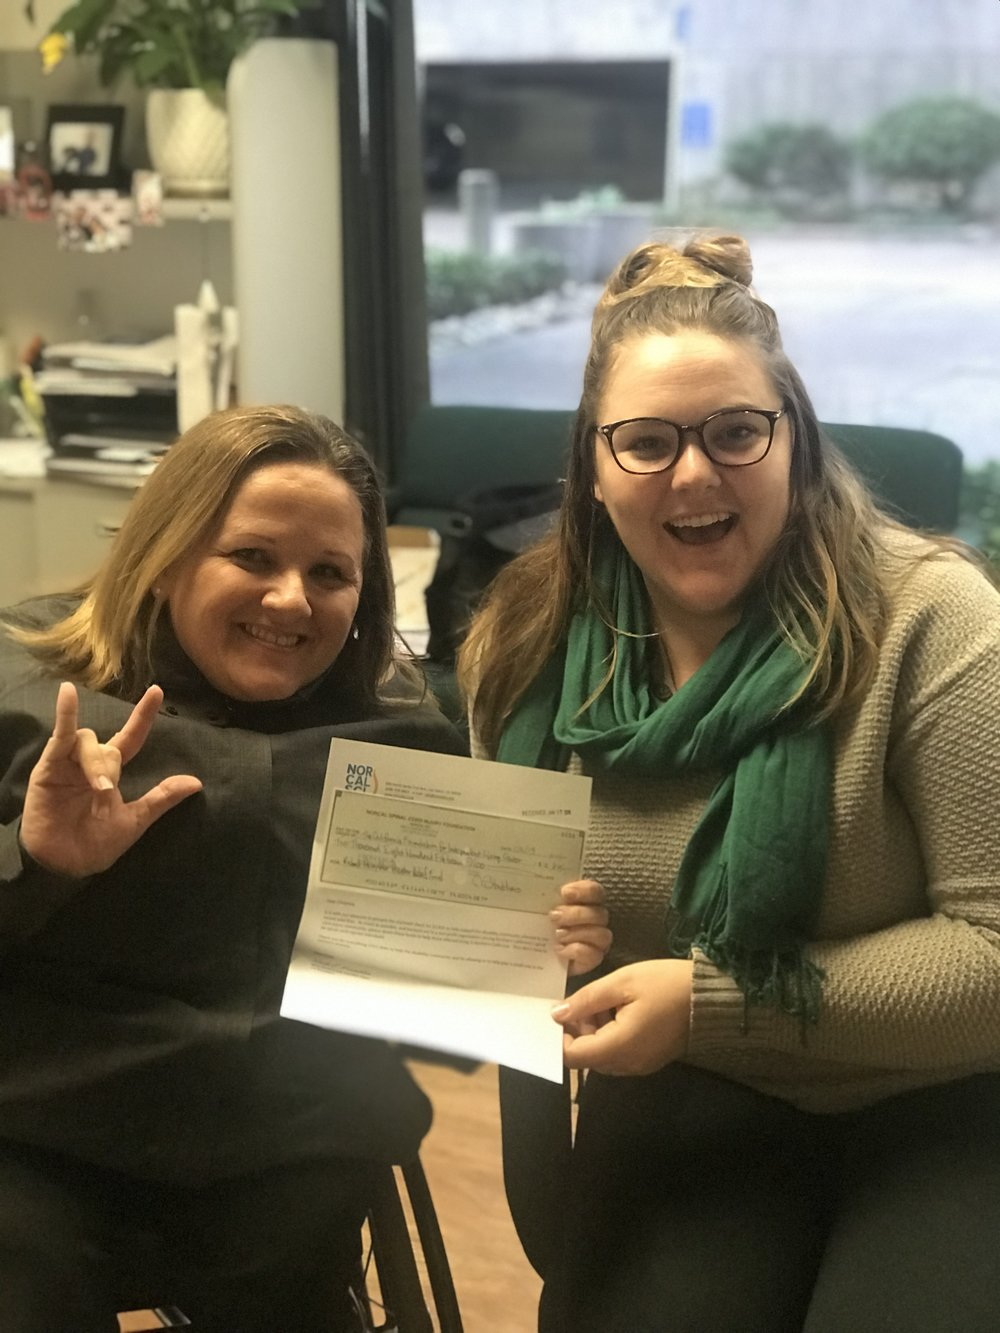 On the left, Christina Mills, CFILC's Executive Director, holds NorCal SCI's check along with CFILC's Ability Tools Program Coordinator, Emily Flynn.